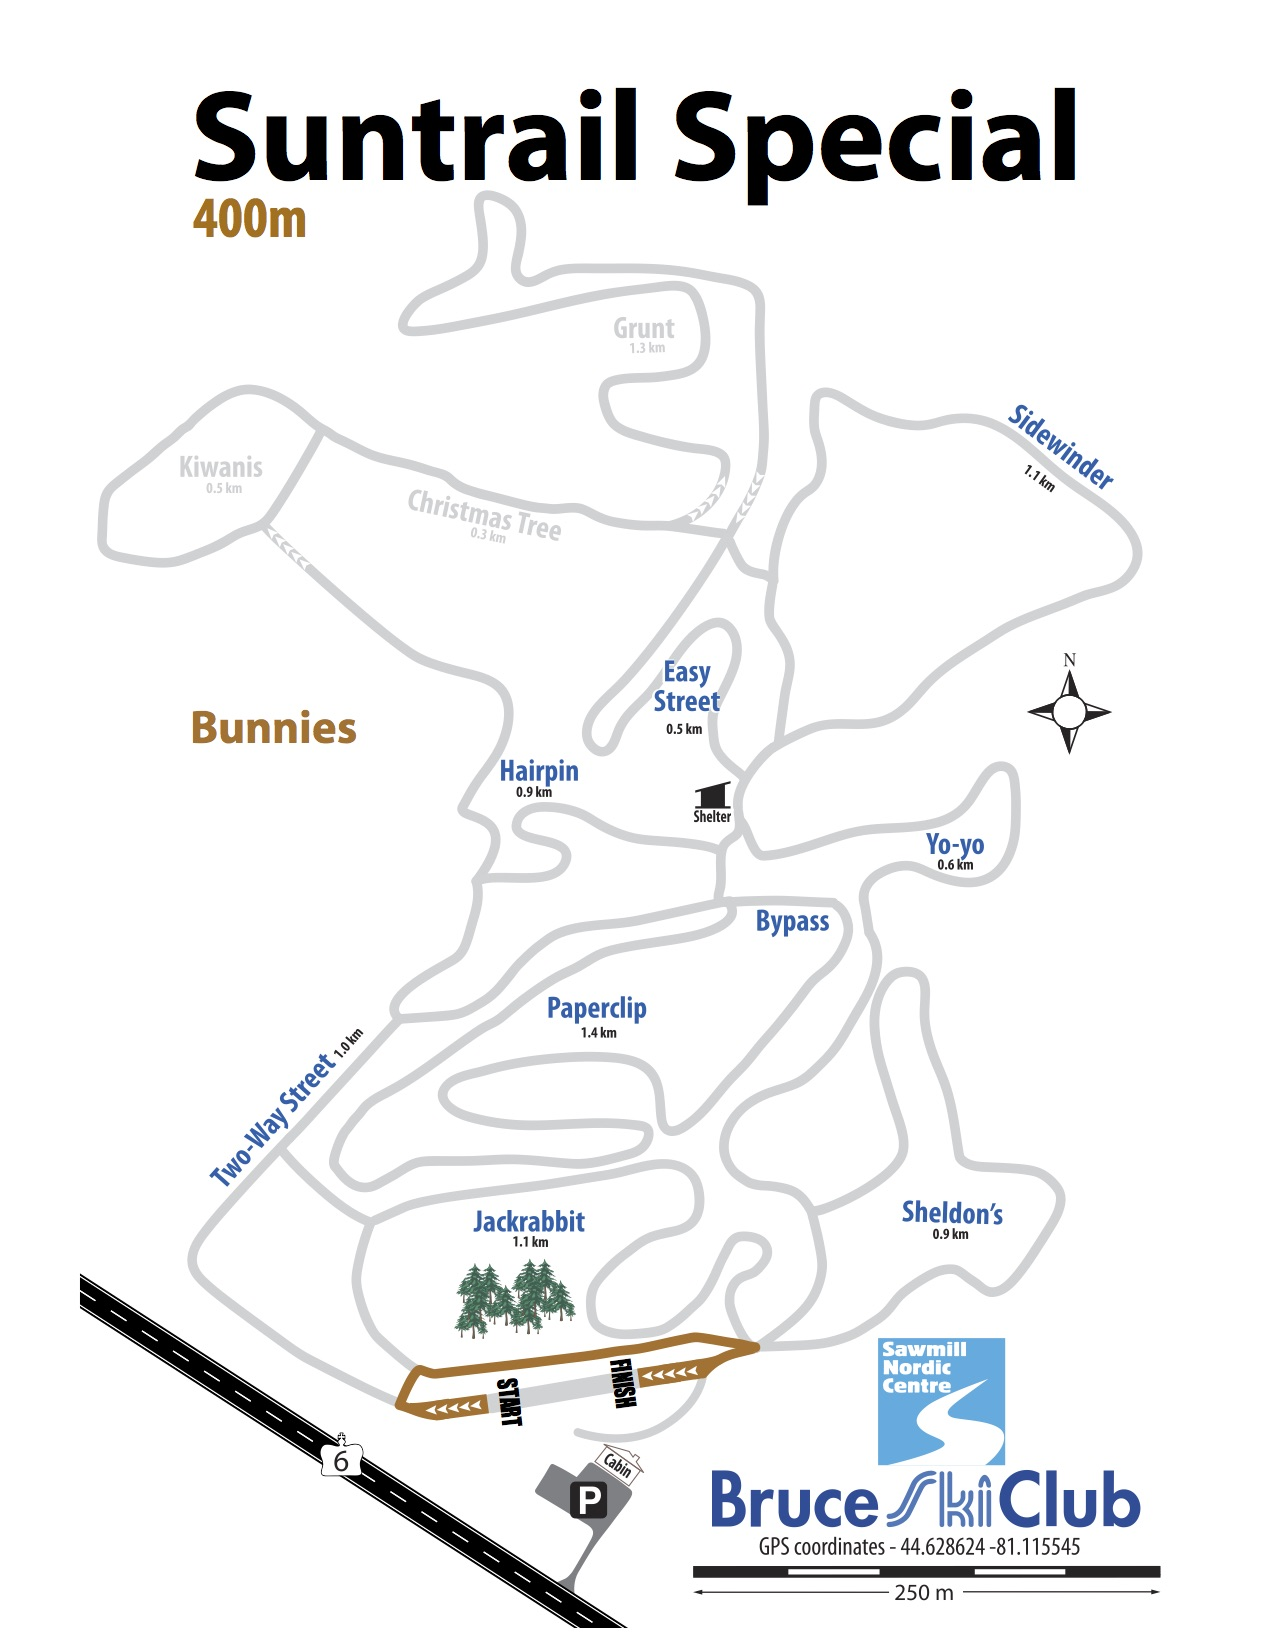 2018 Suntrail Special Cross-Country Ski Race Map – 400m